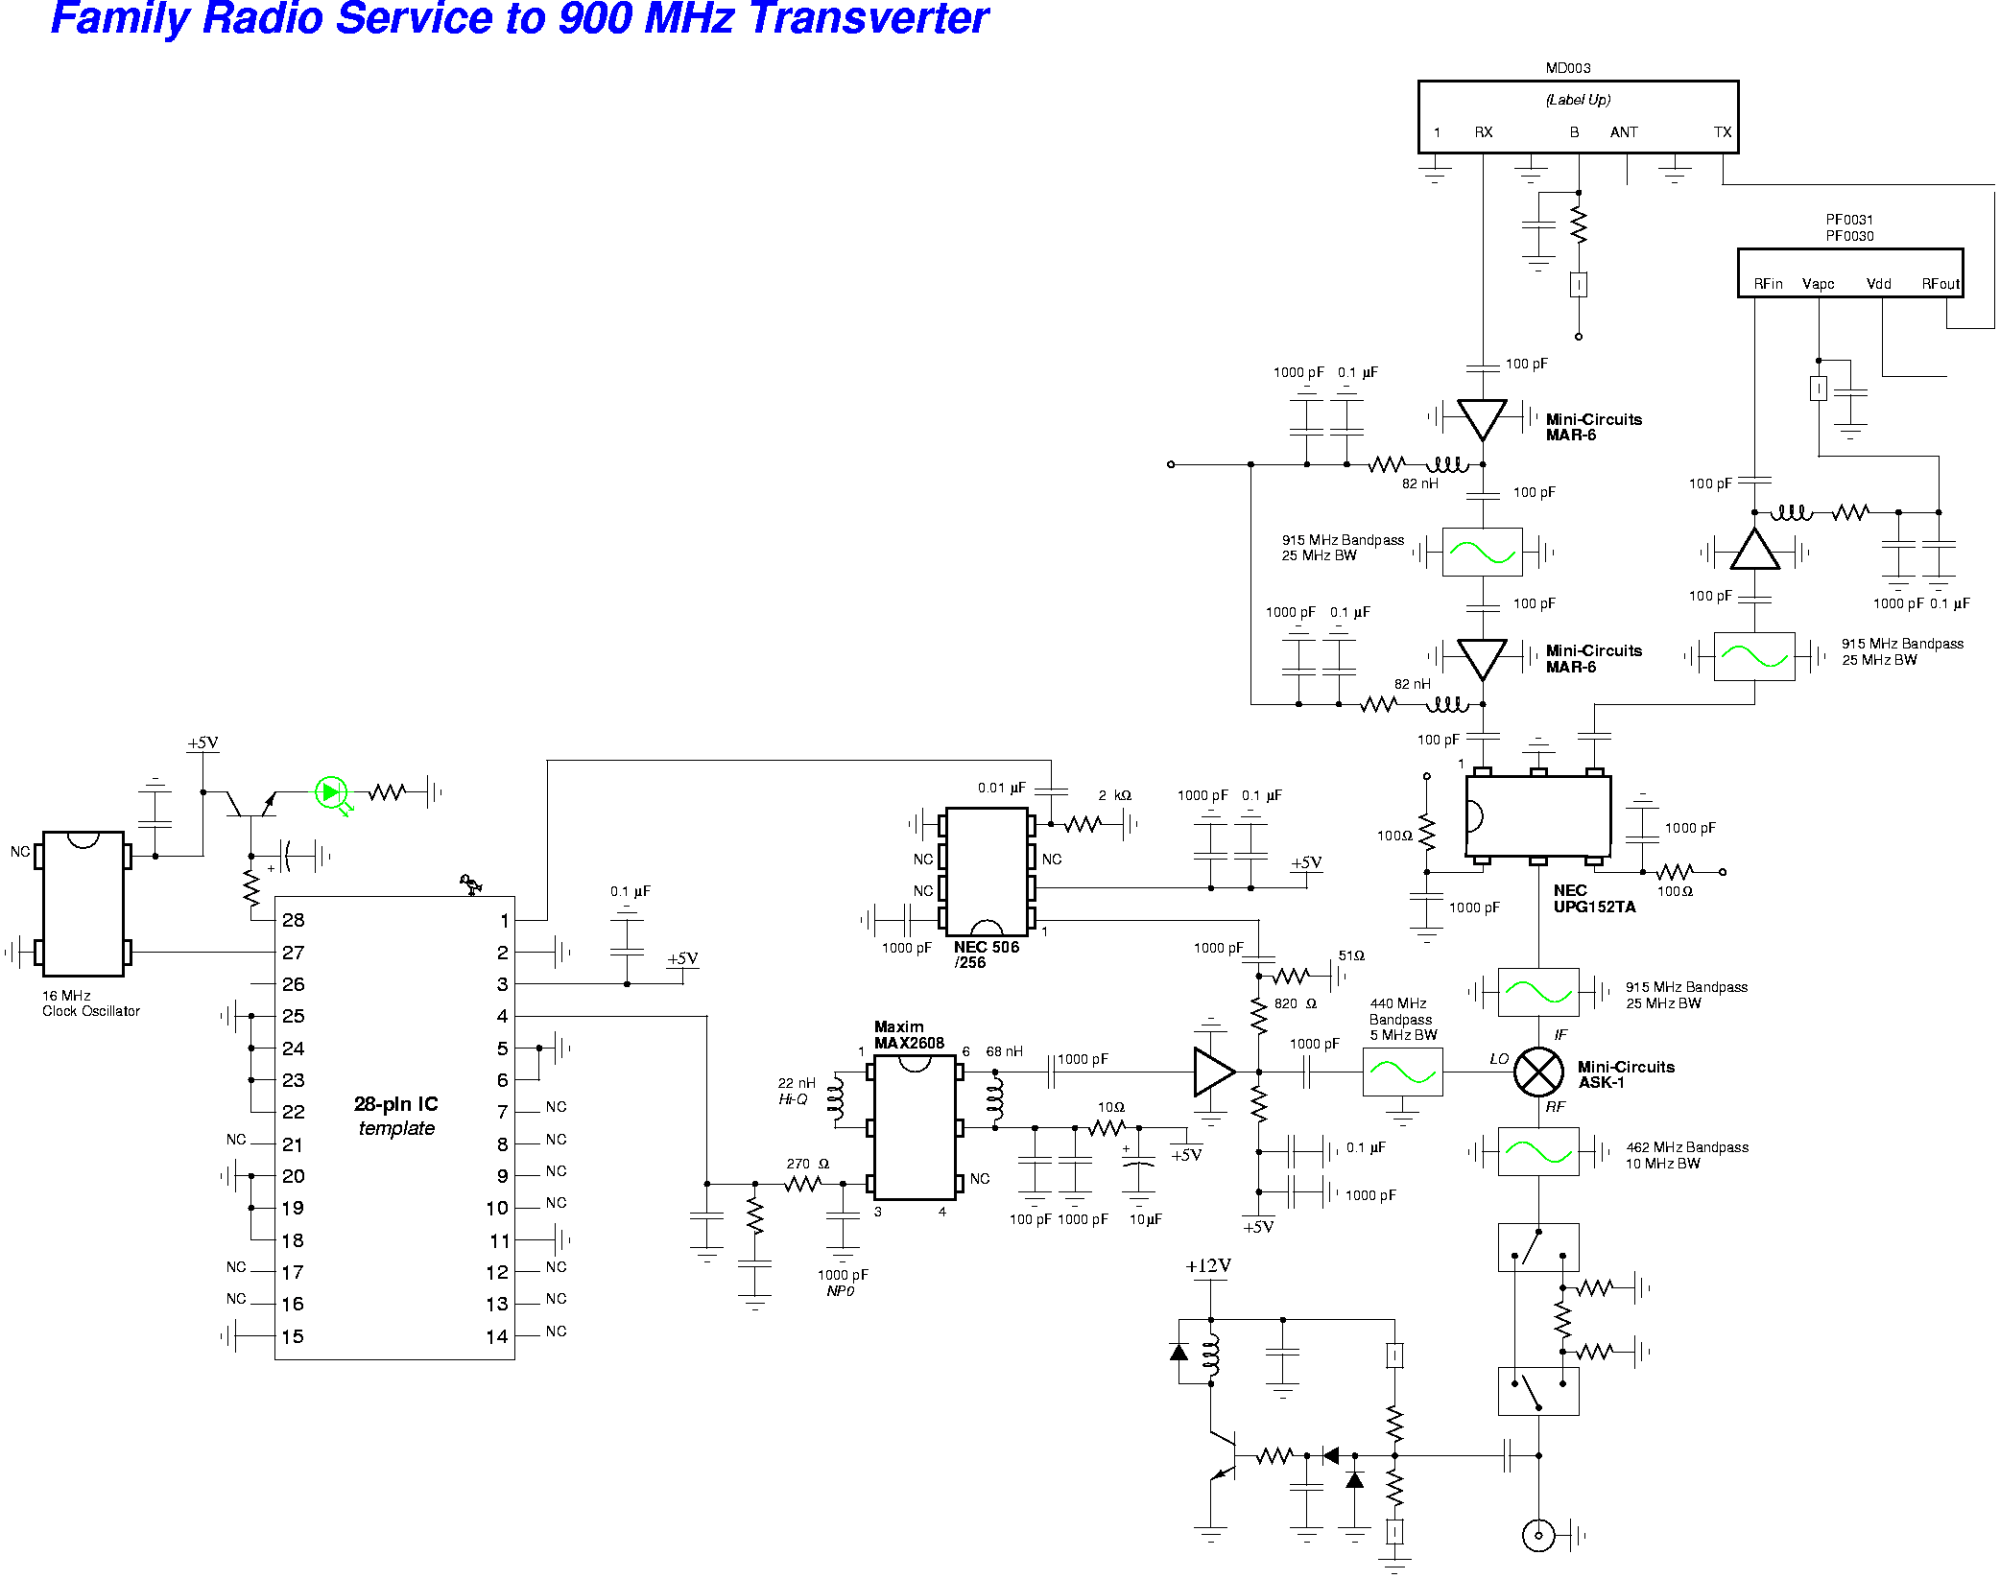 hight resolution of family radio service frs to 900 mhz transverter schematic